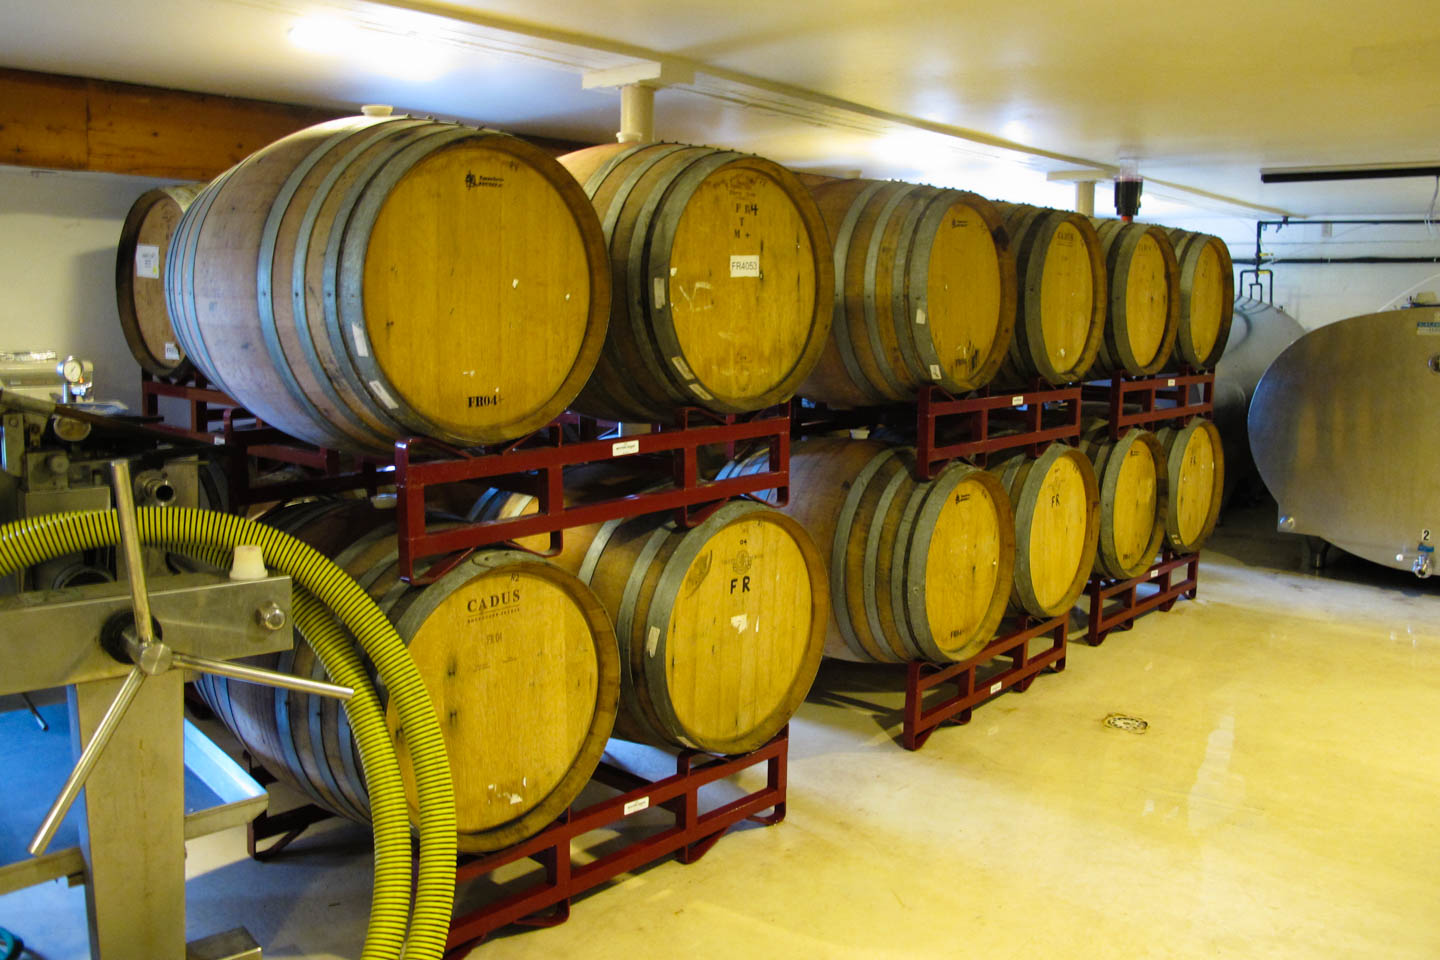 Wine Barrels at Boyden Valley Winery in Vermont